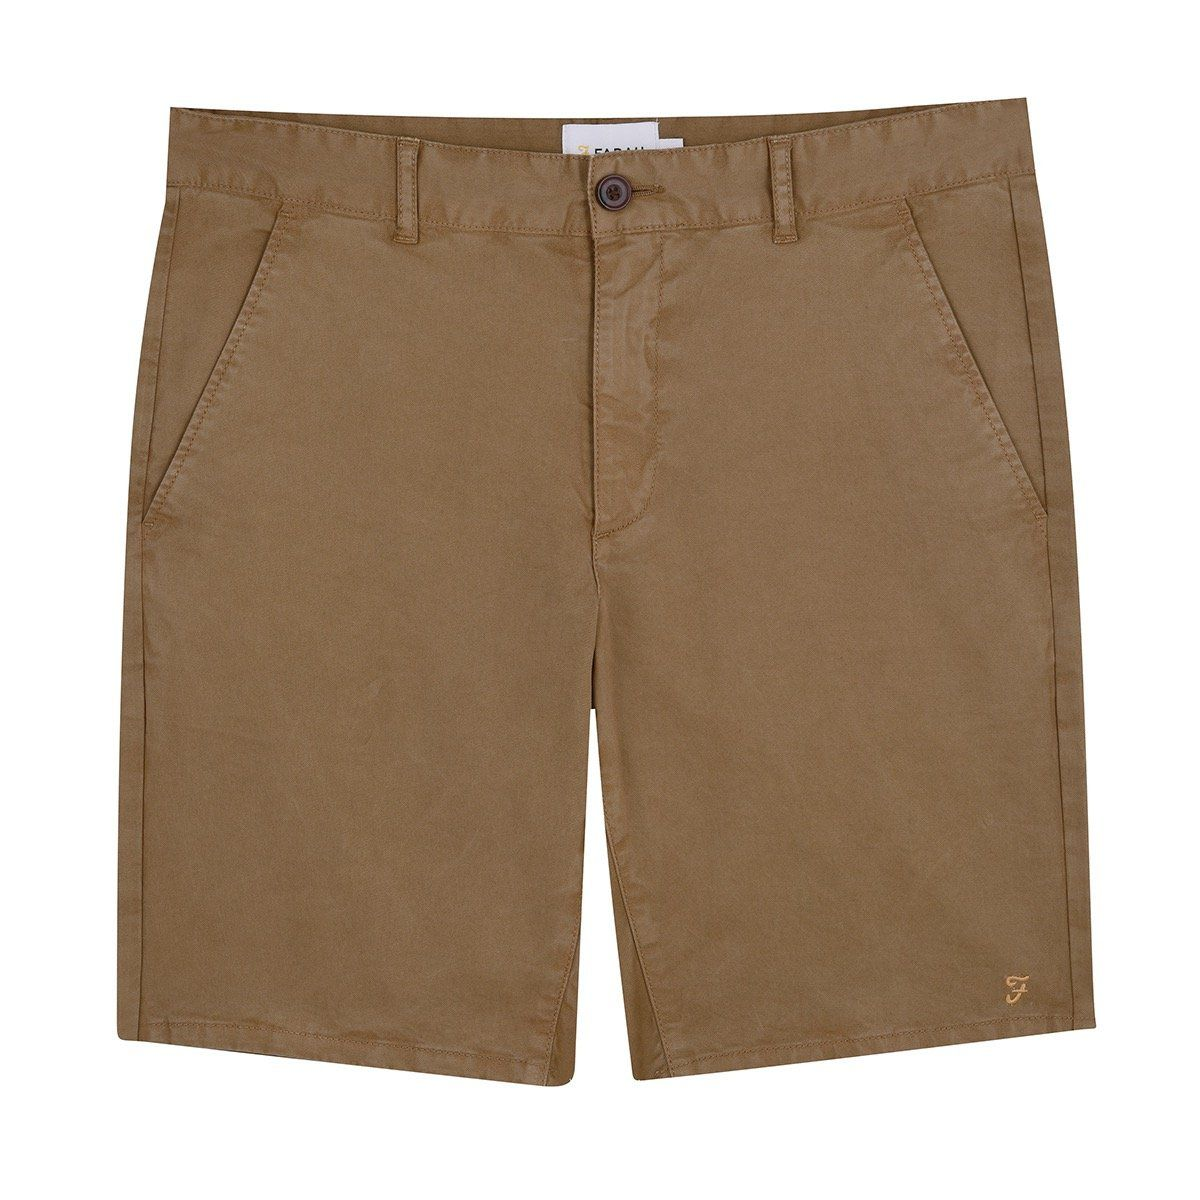 Farah Hawk Dyed Twill Chino Shorts - Olive Brown 30'